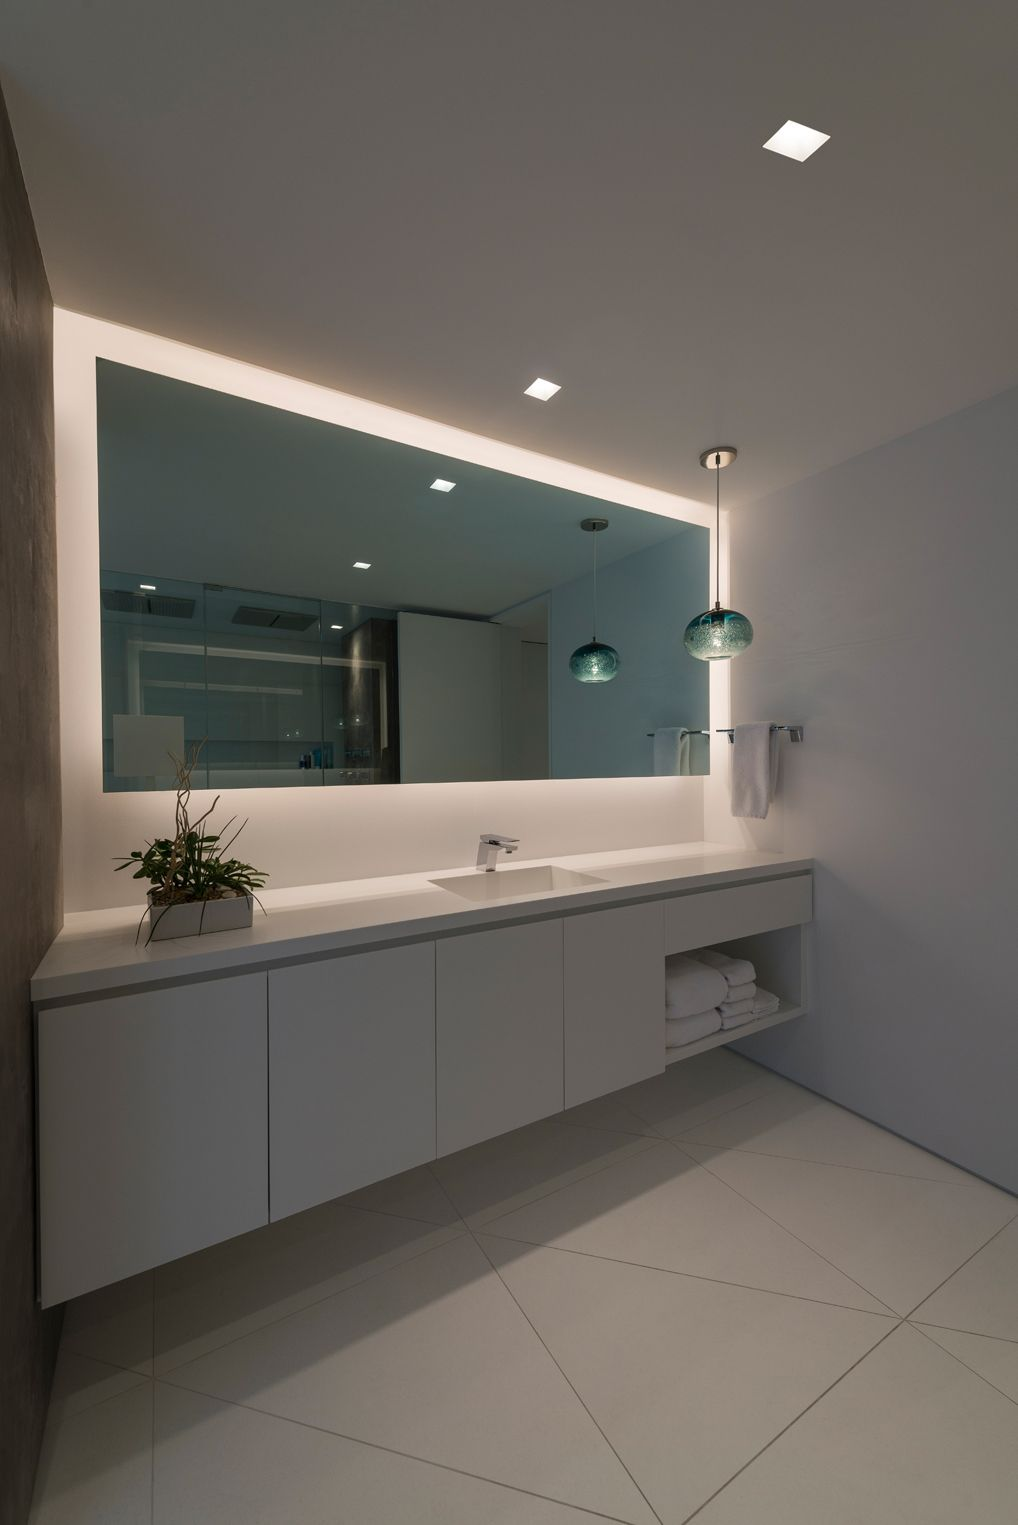 Bathroom lighting is essential and cannot be overlooked. Why? What